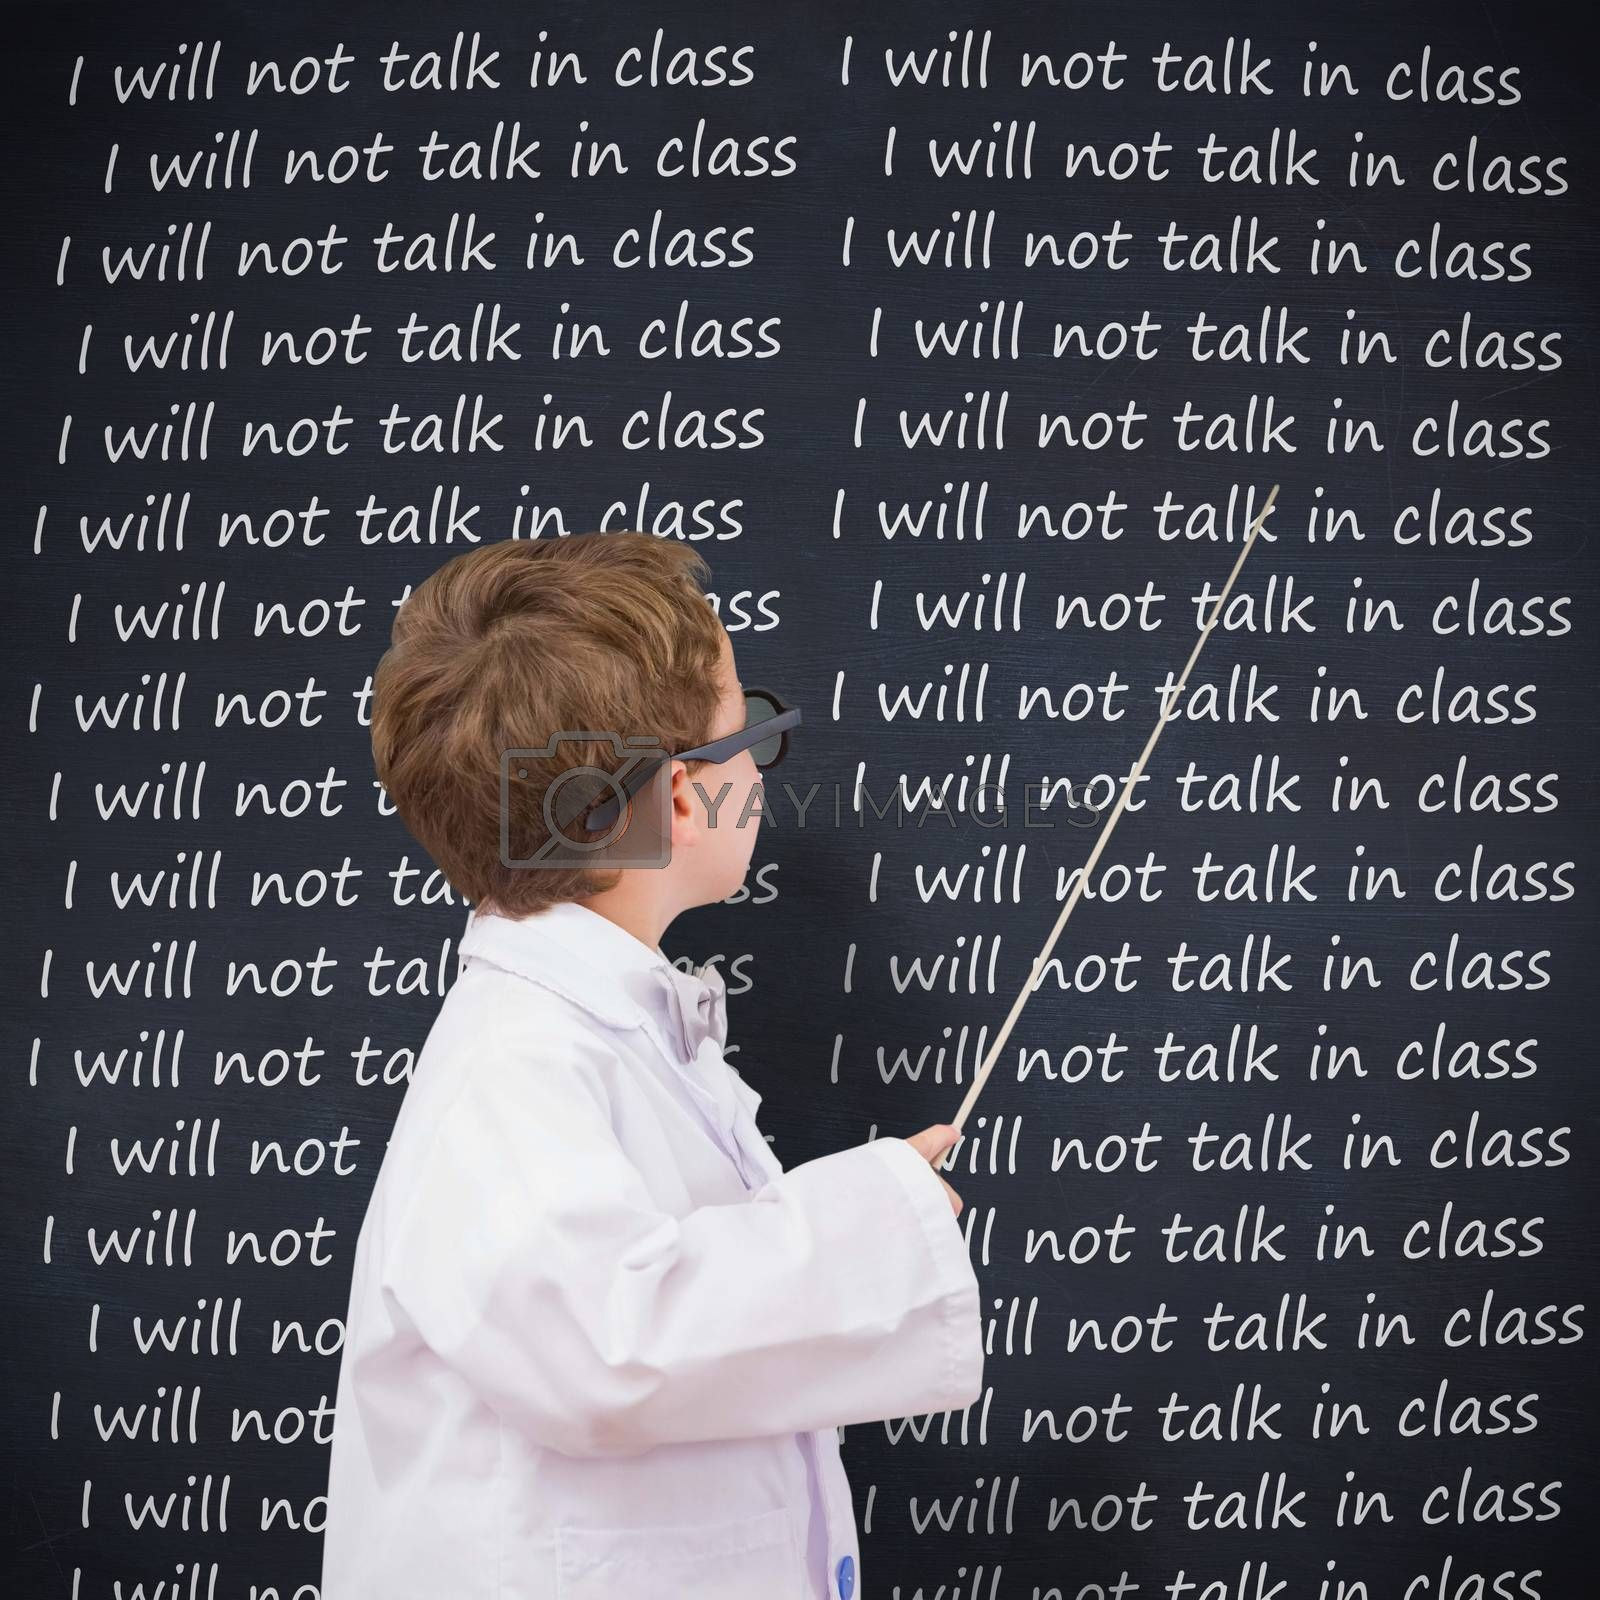 Cute pupil in lab coat against blackboard